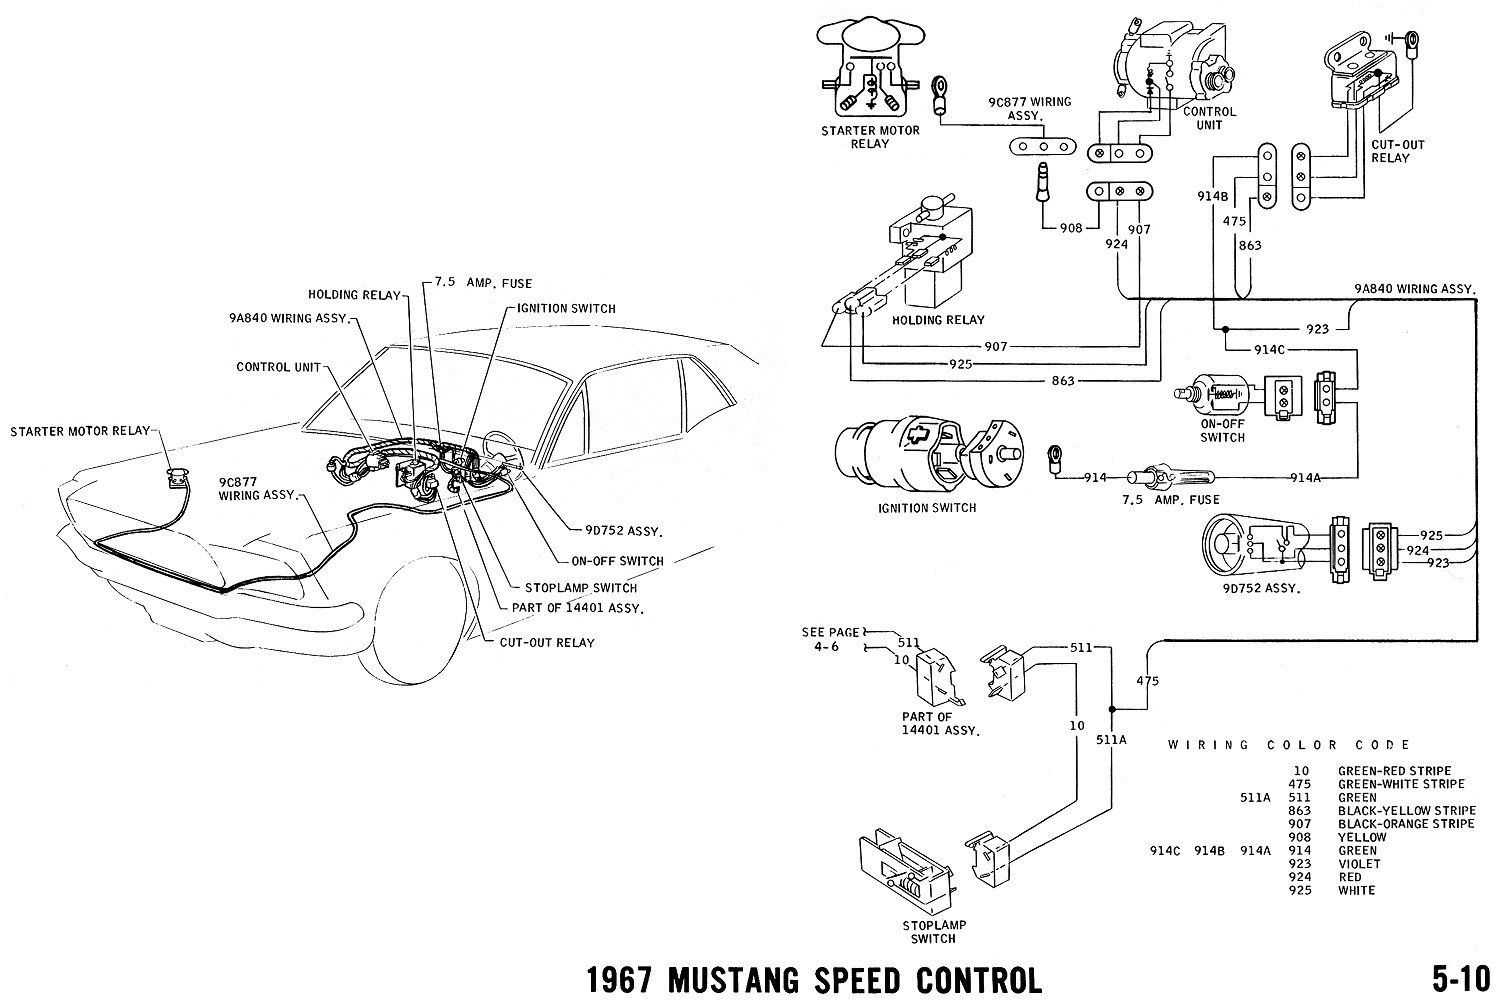 Mustang Ignition Switch Diagram